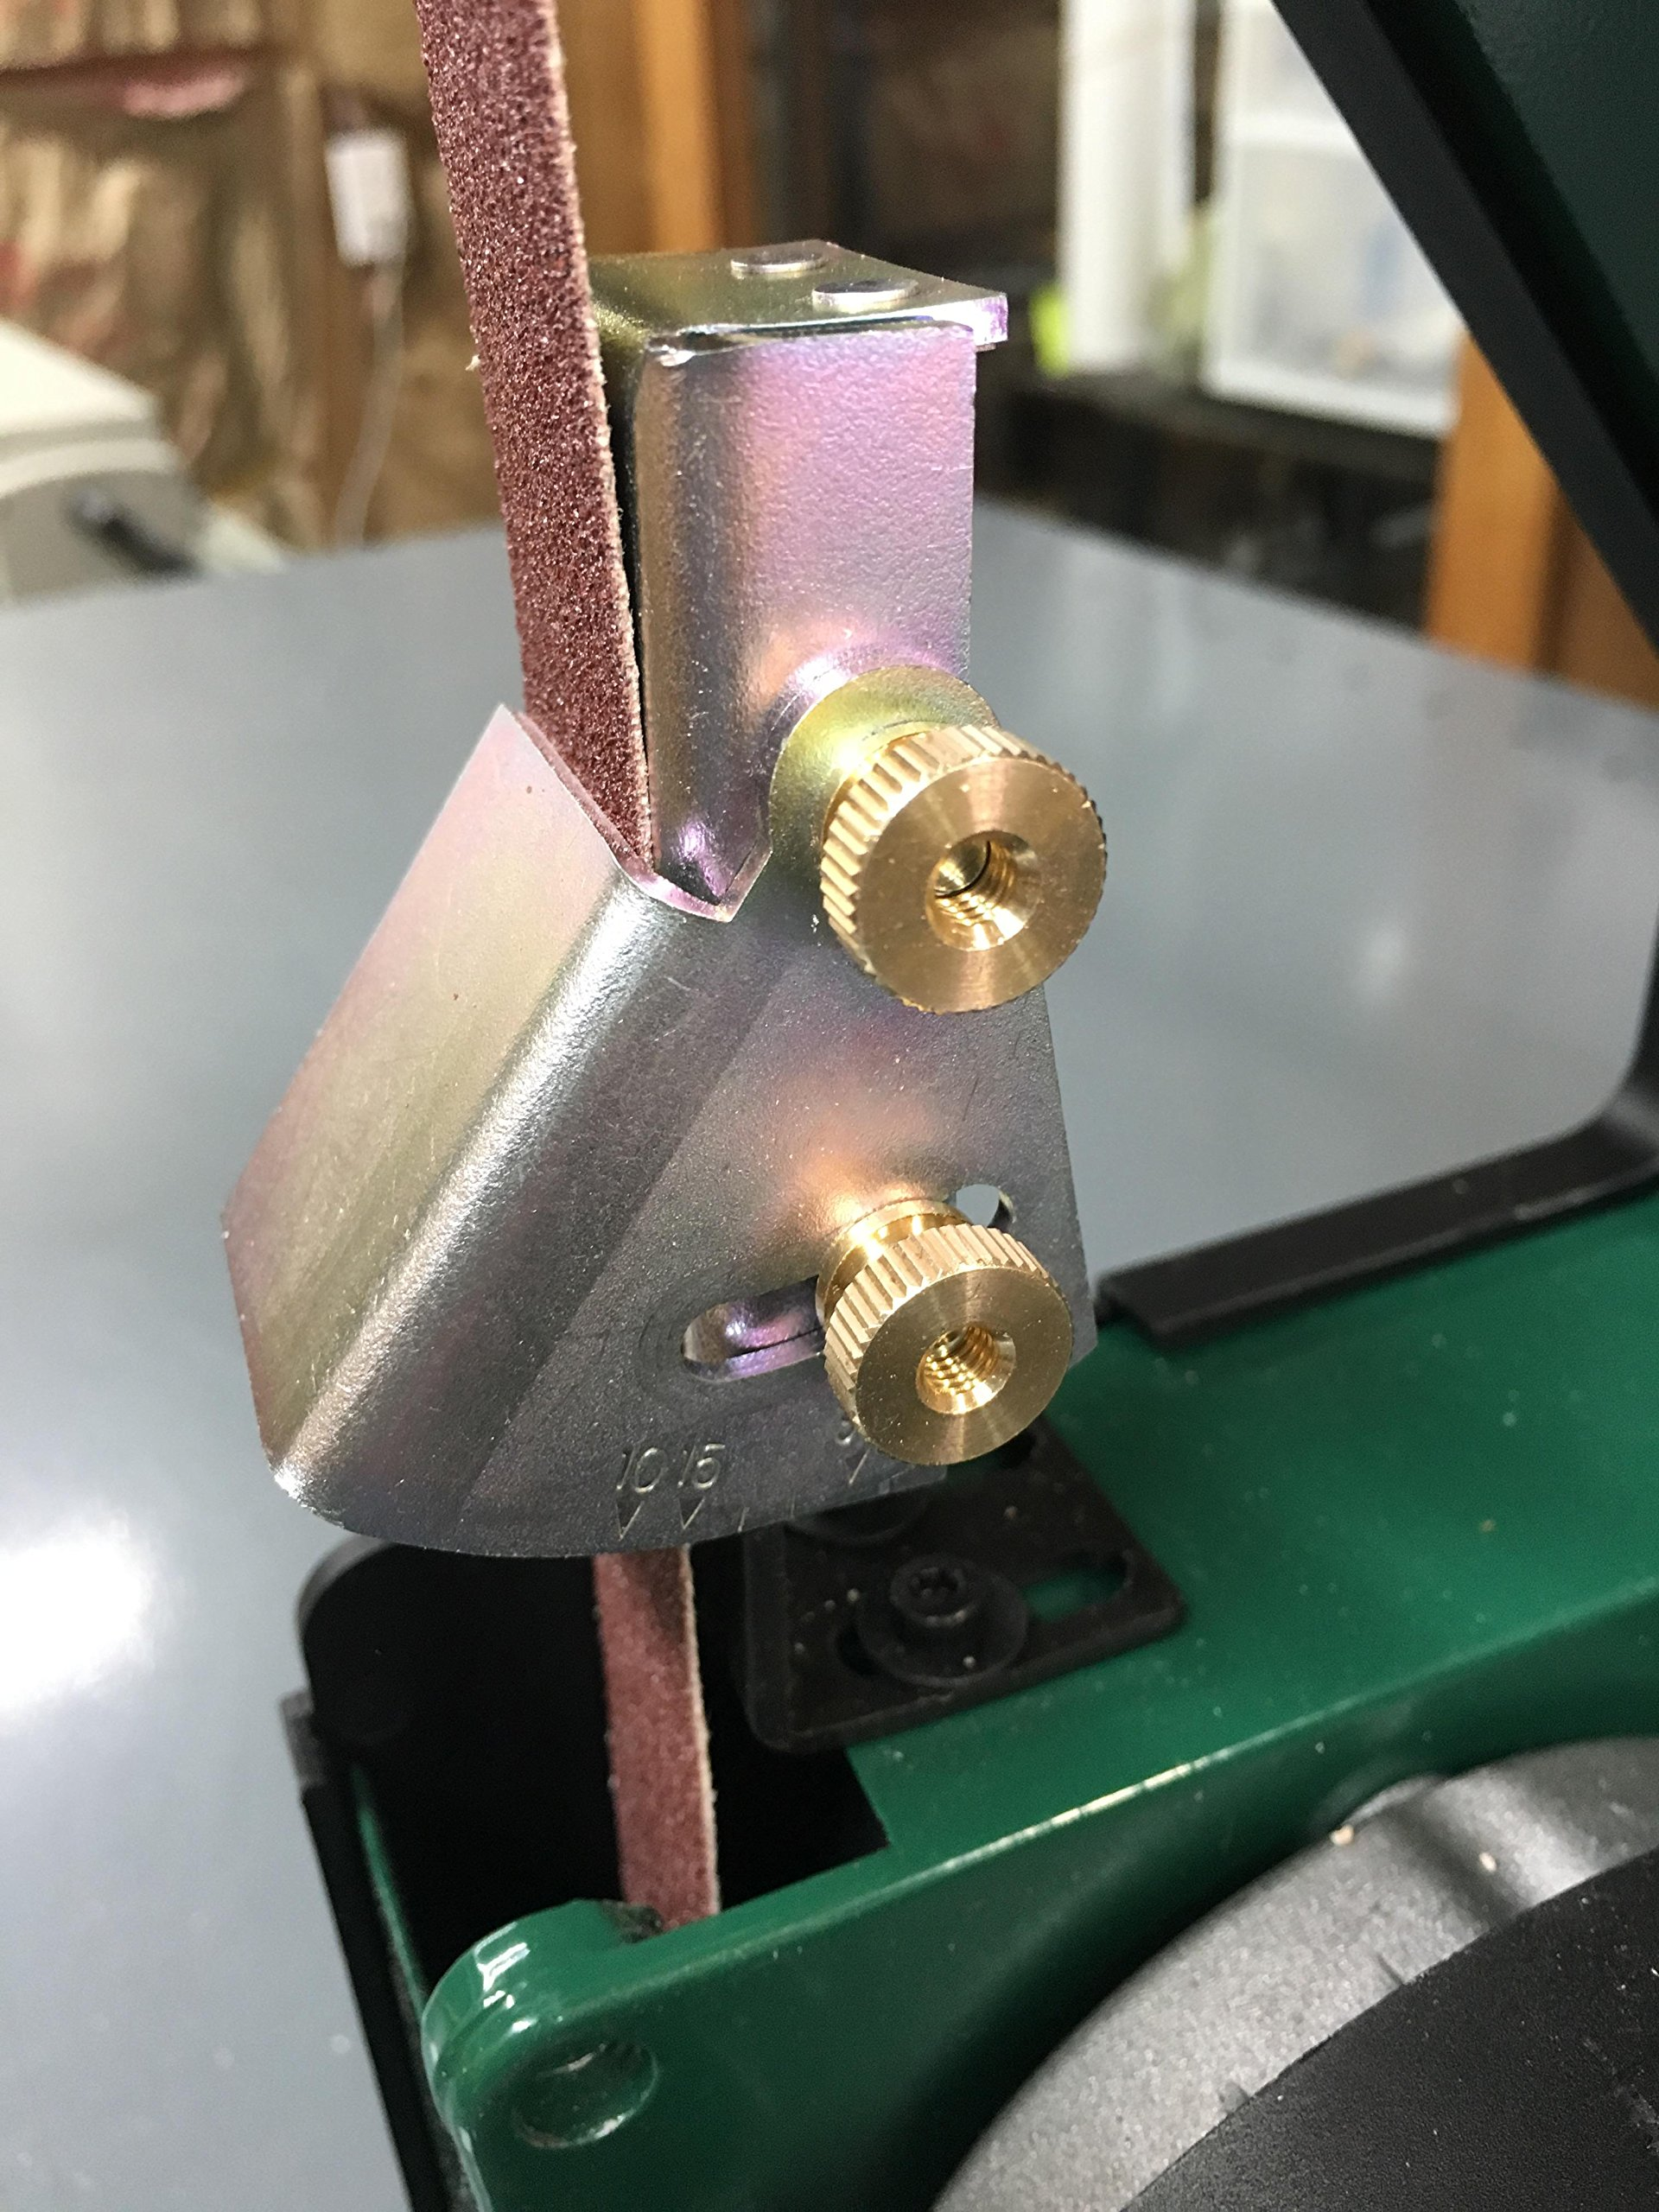 Knife Sharpening Angle Guide - Sharpen EXACT angles on edges from 10 to 45 by Pro Sharpening Supplies (Image #2)